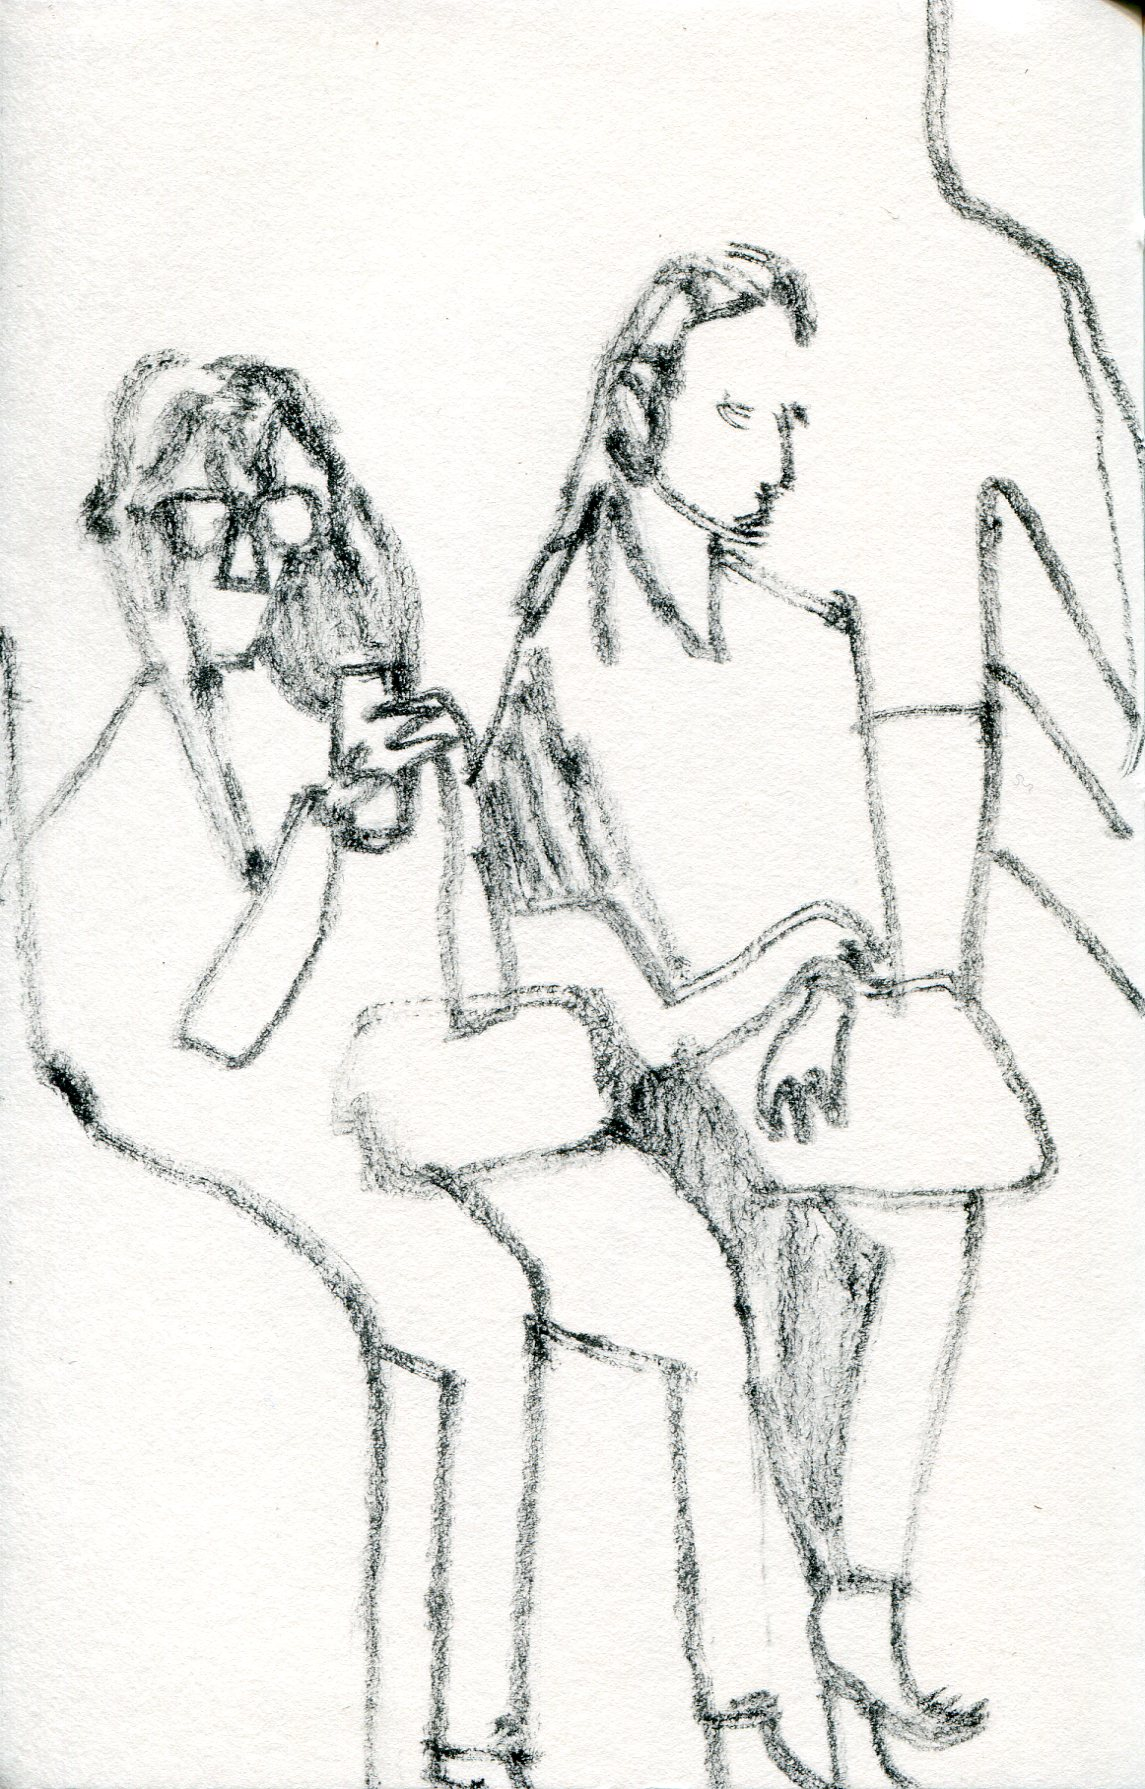 Underground drawings (two figures)